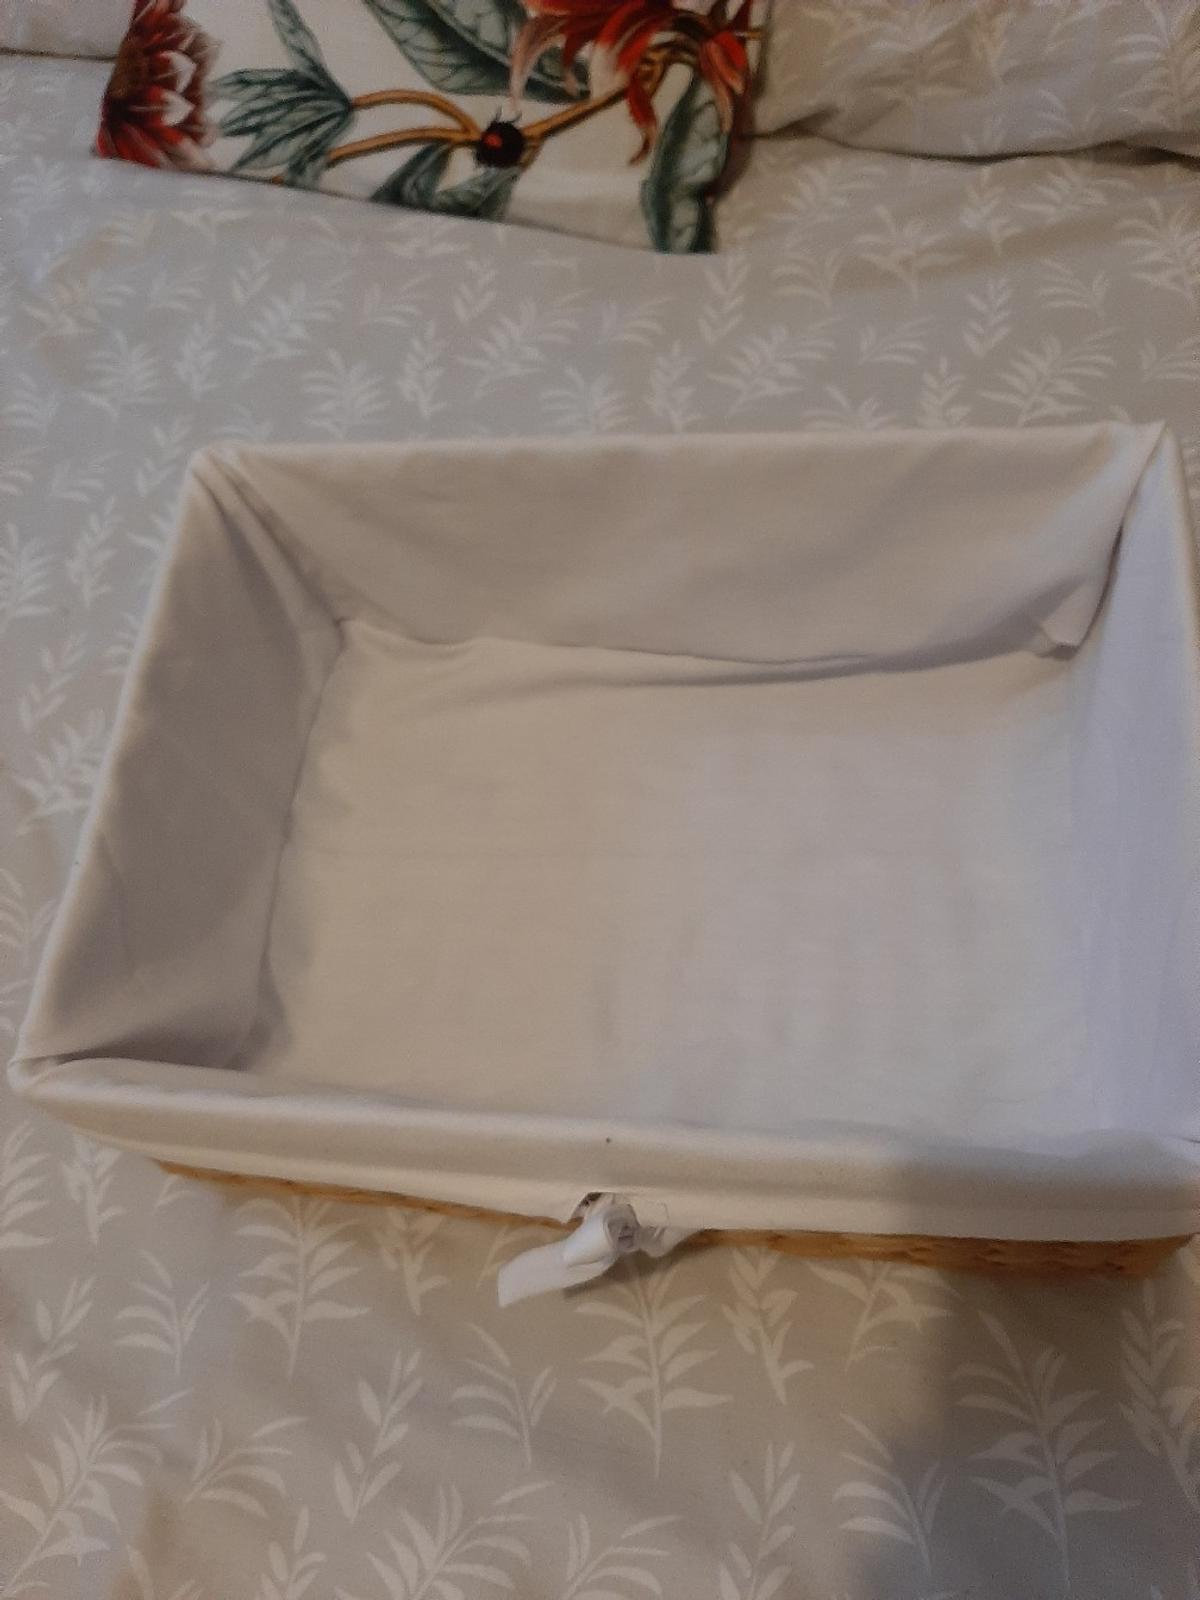 lovely linen lined woven basket strong and in great condition 16 x 6 x 12 inches